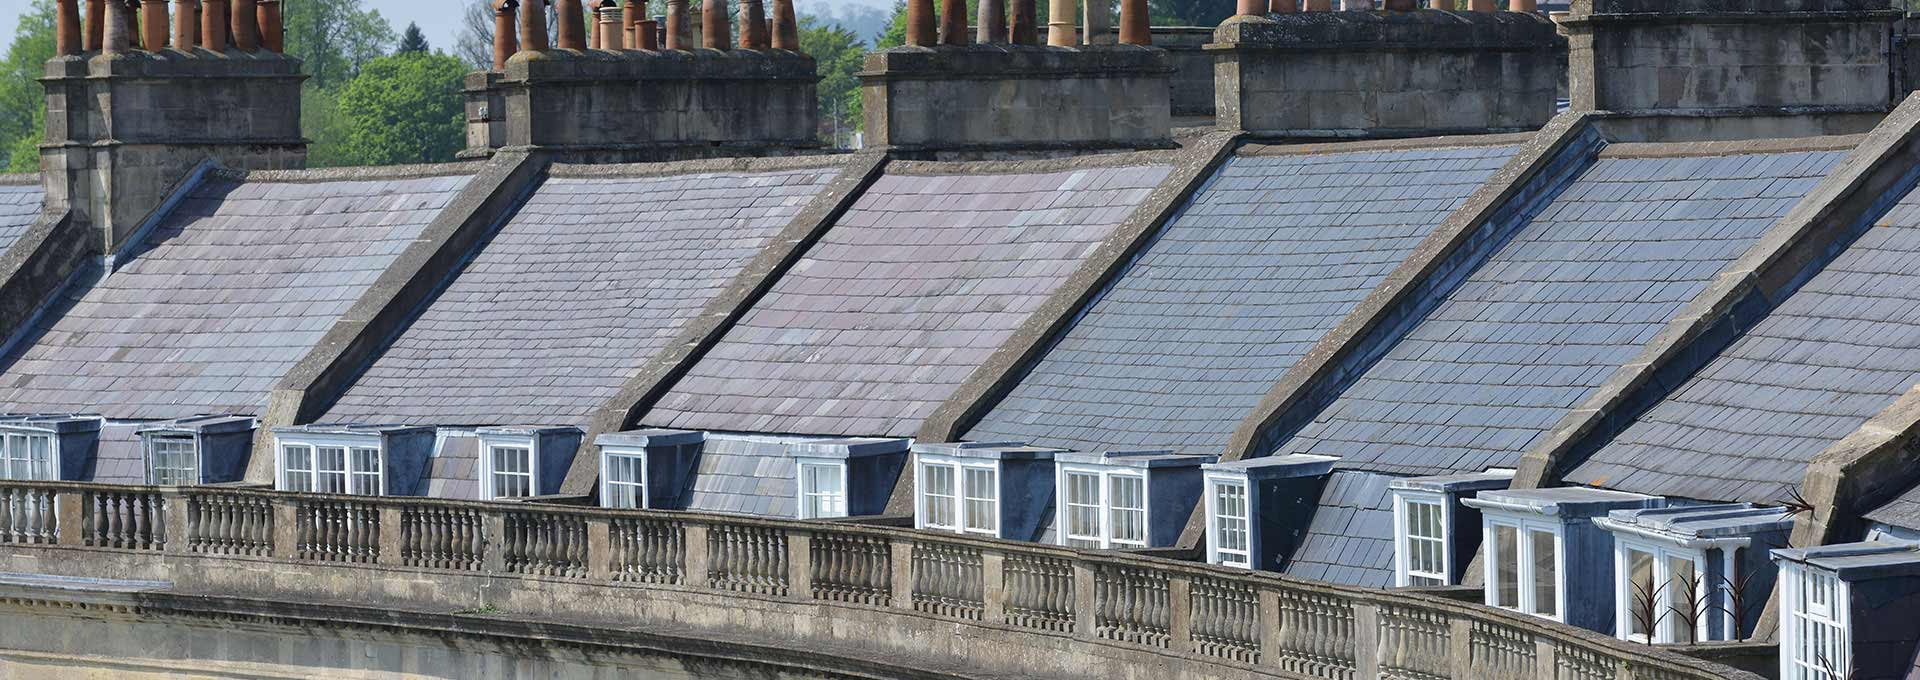 4 Things to Look for When Seeking a Roofing Quotation